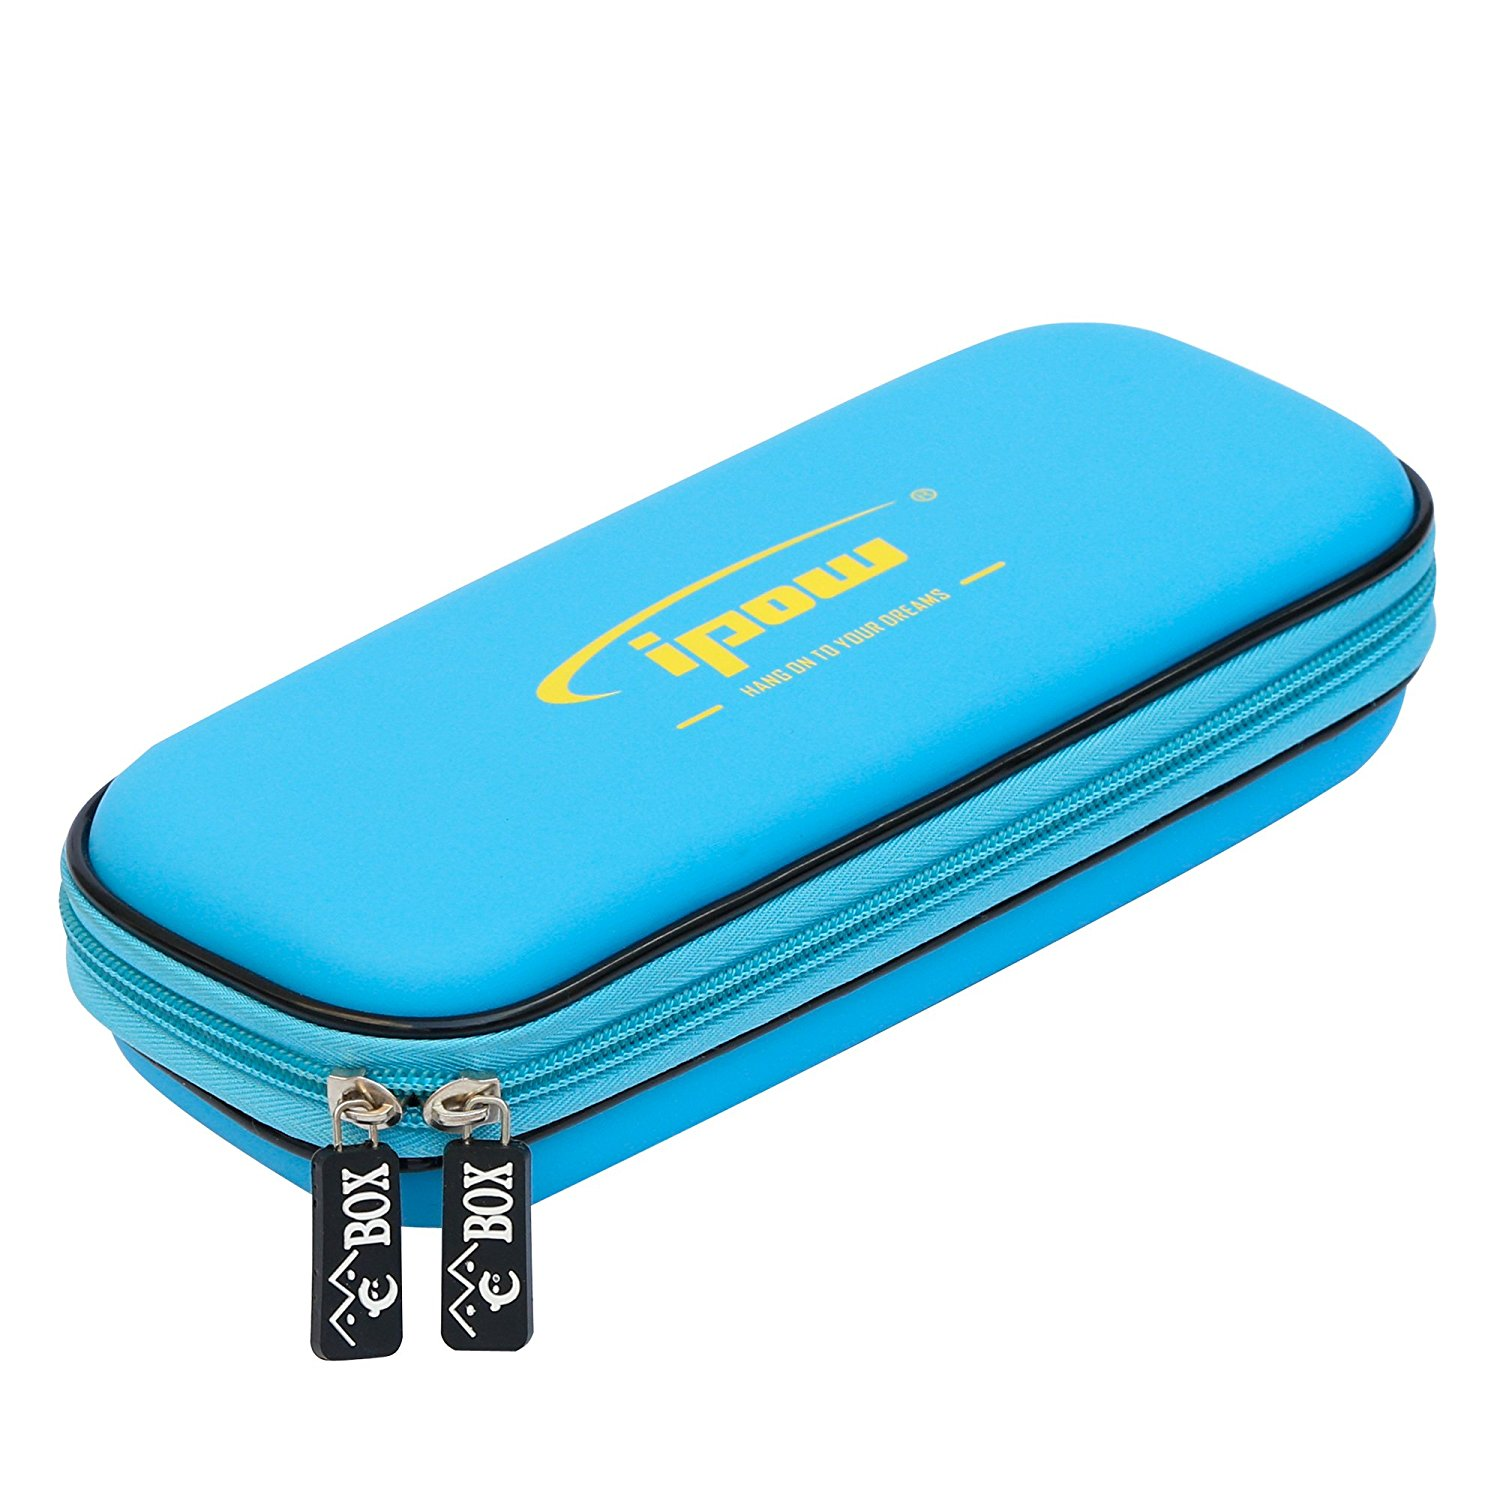 IPOW Pencil Holder Case Elastic Strap Sleeve Pocket Protective Carrying Case Storage Pouch Stationery Pencil Box Cosmetic Makeup Bag Organizer Holder, Blue